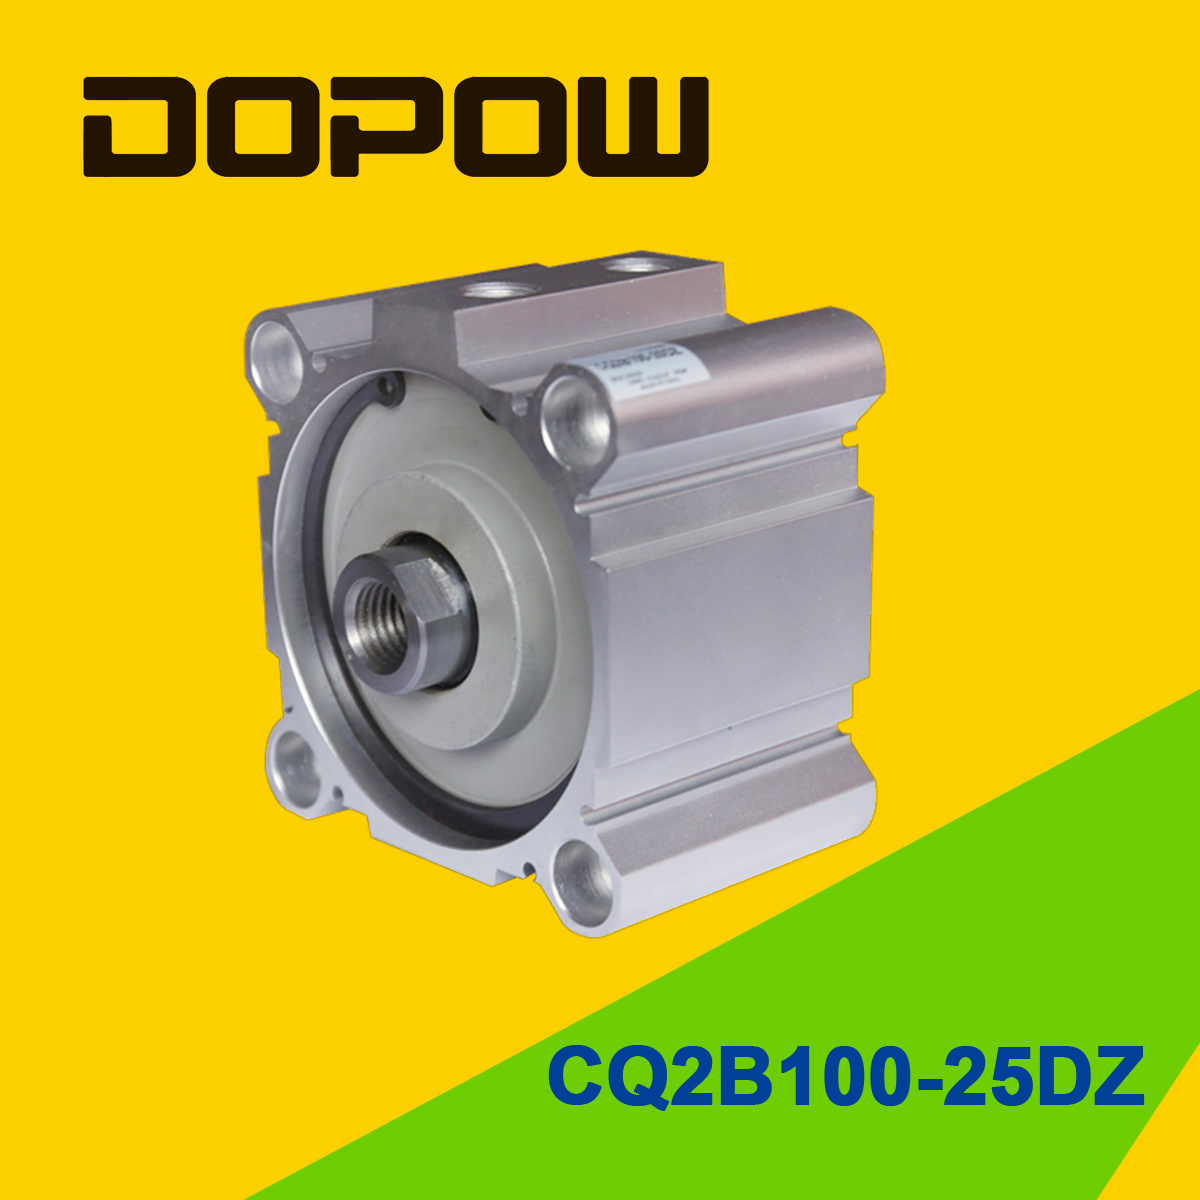 Dopow Series Cq2b100-25 Compact Cylinder Double Acting Basic Type